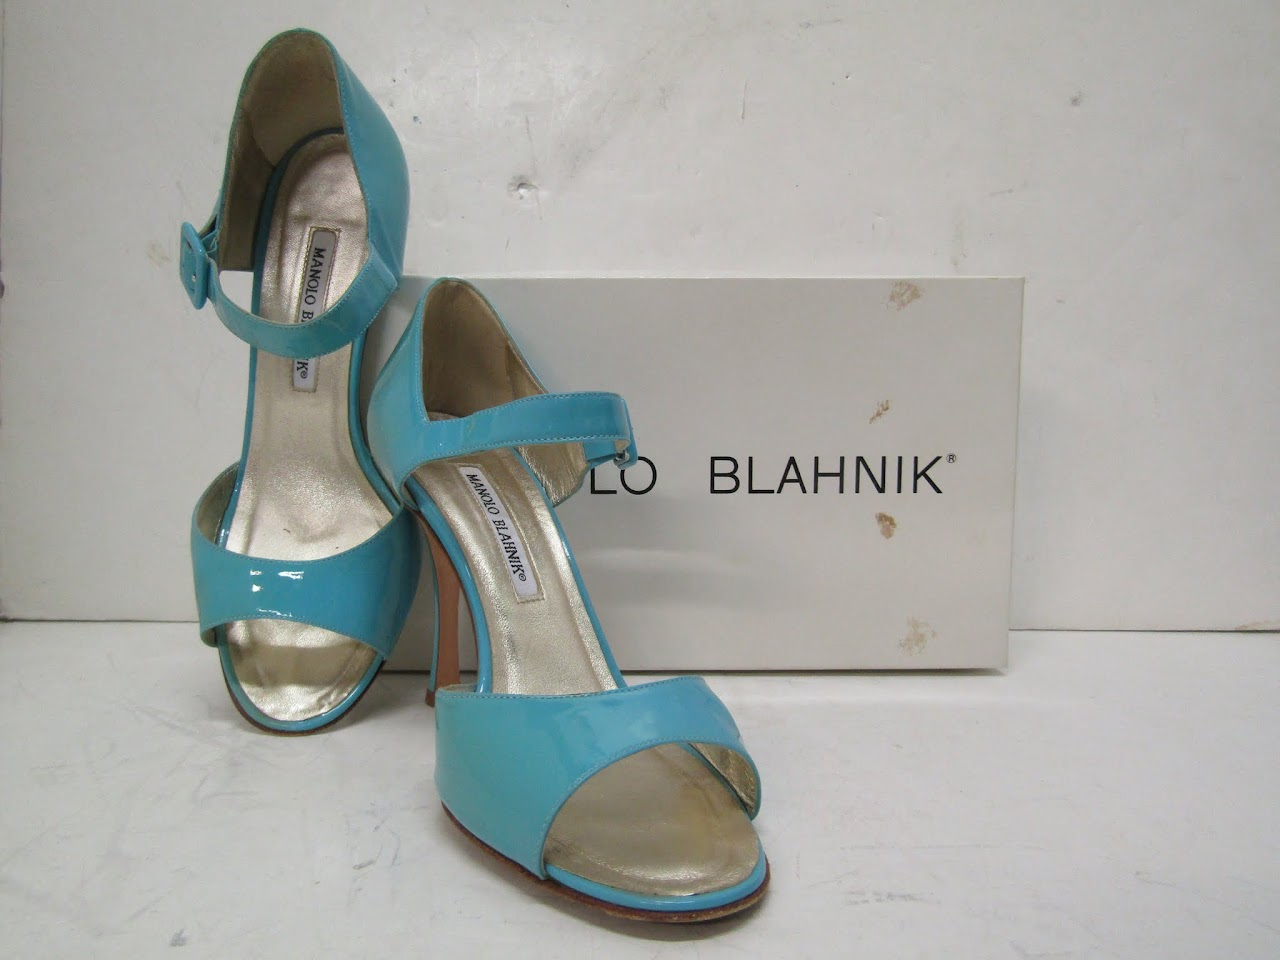 Manolo Blahnik Patent Leather Sandals